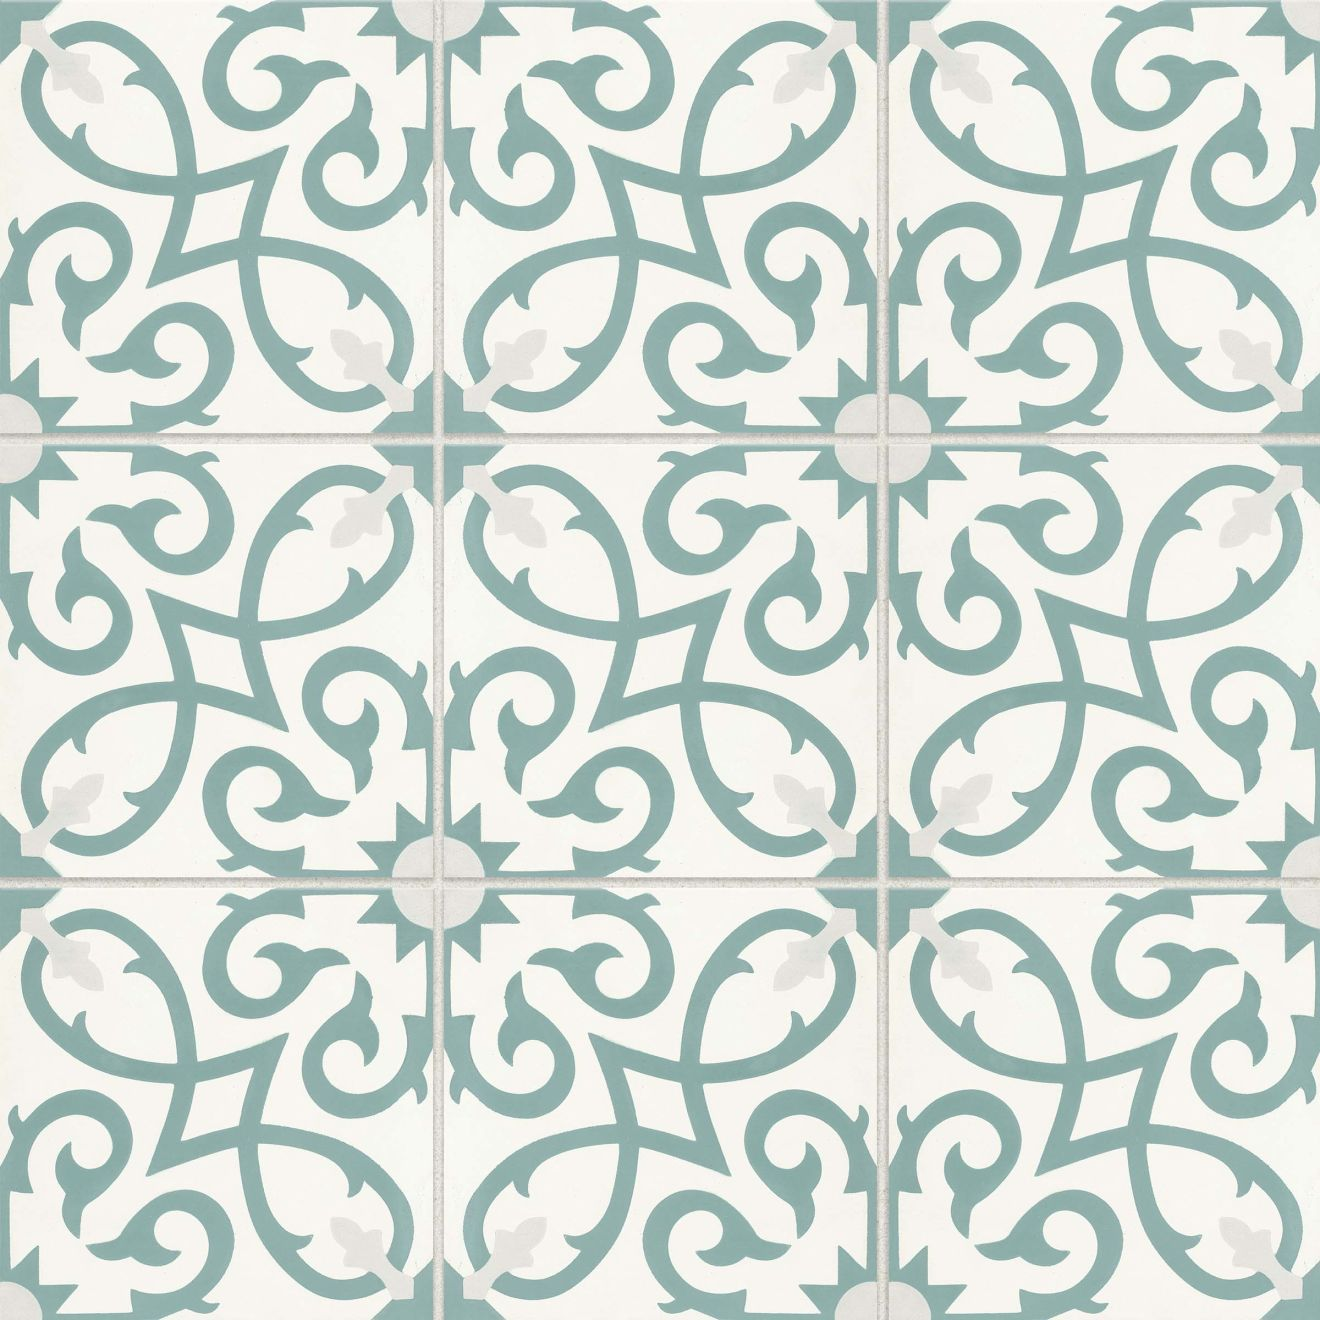 Remy 8 X 8 Floor Wall Tile In Oasis Bedrosians Tile Stone